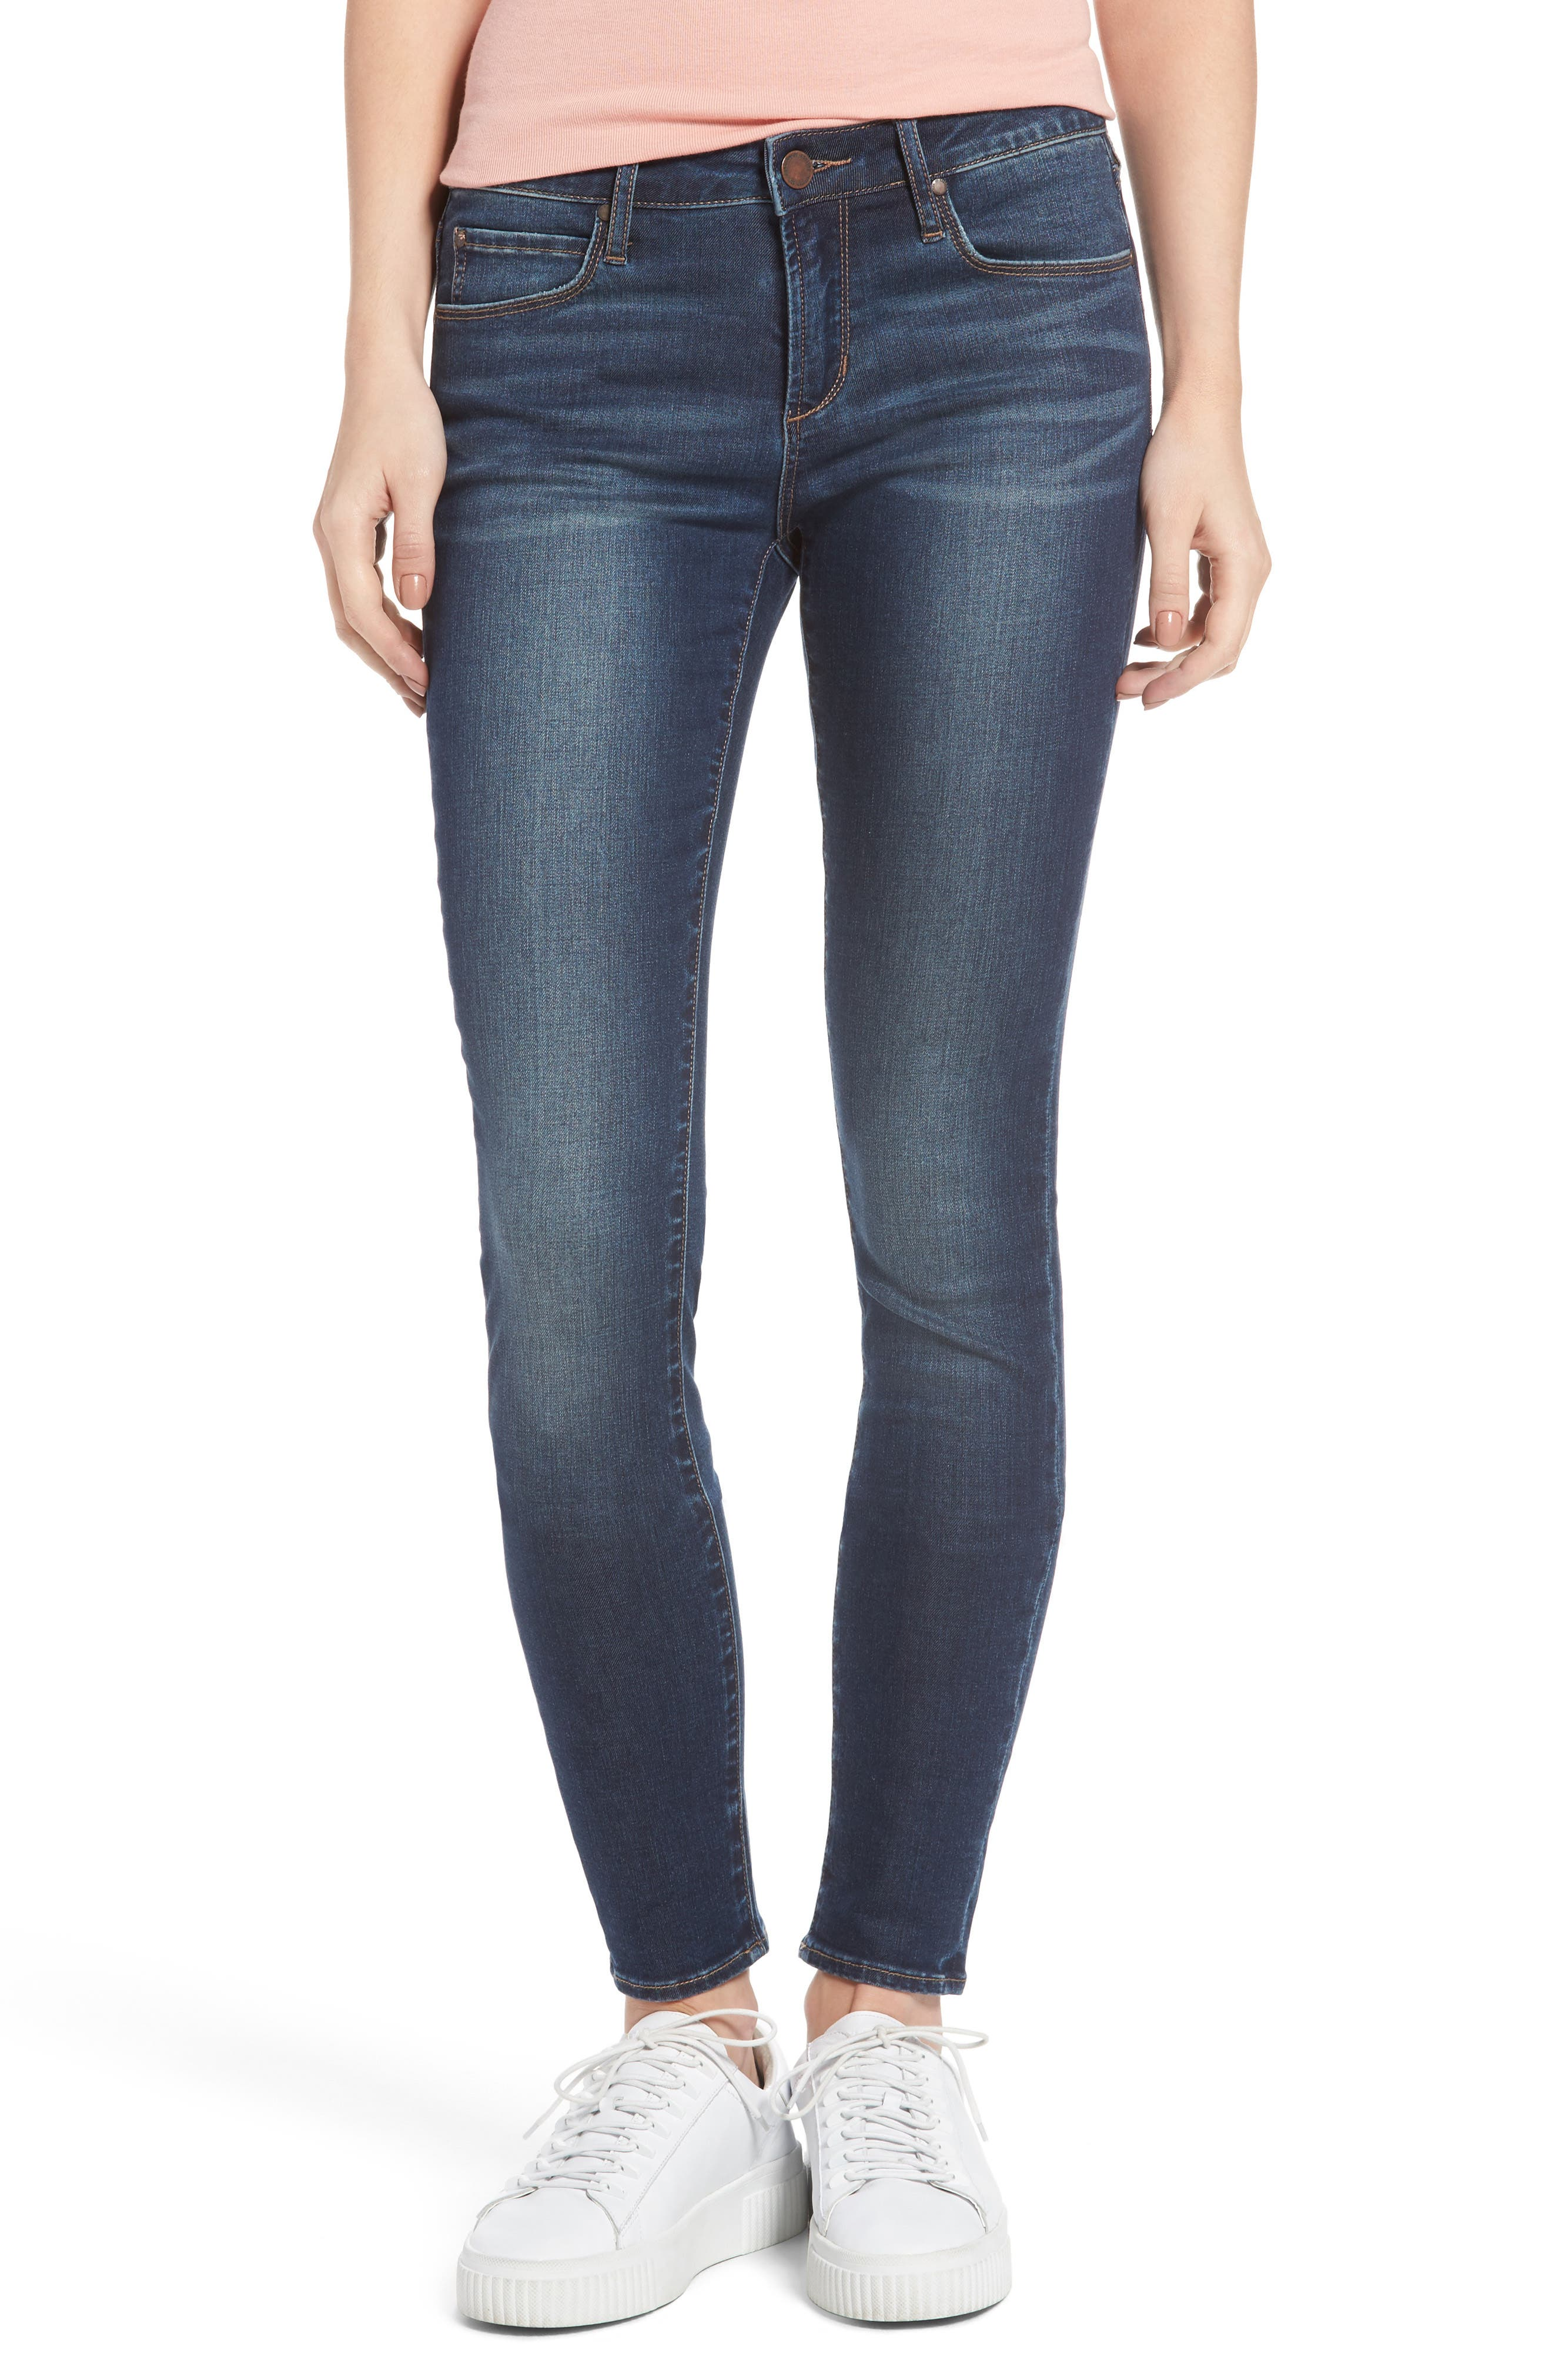 Melody Skinny Jeans,                         Main,                         color, Blue Ridge